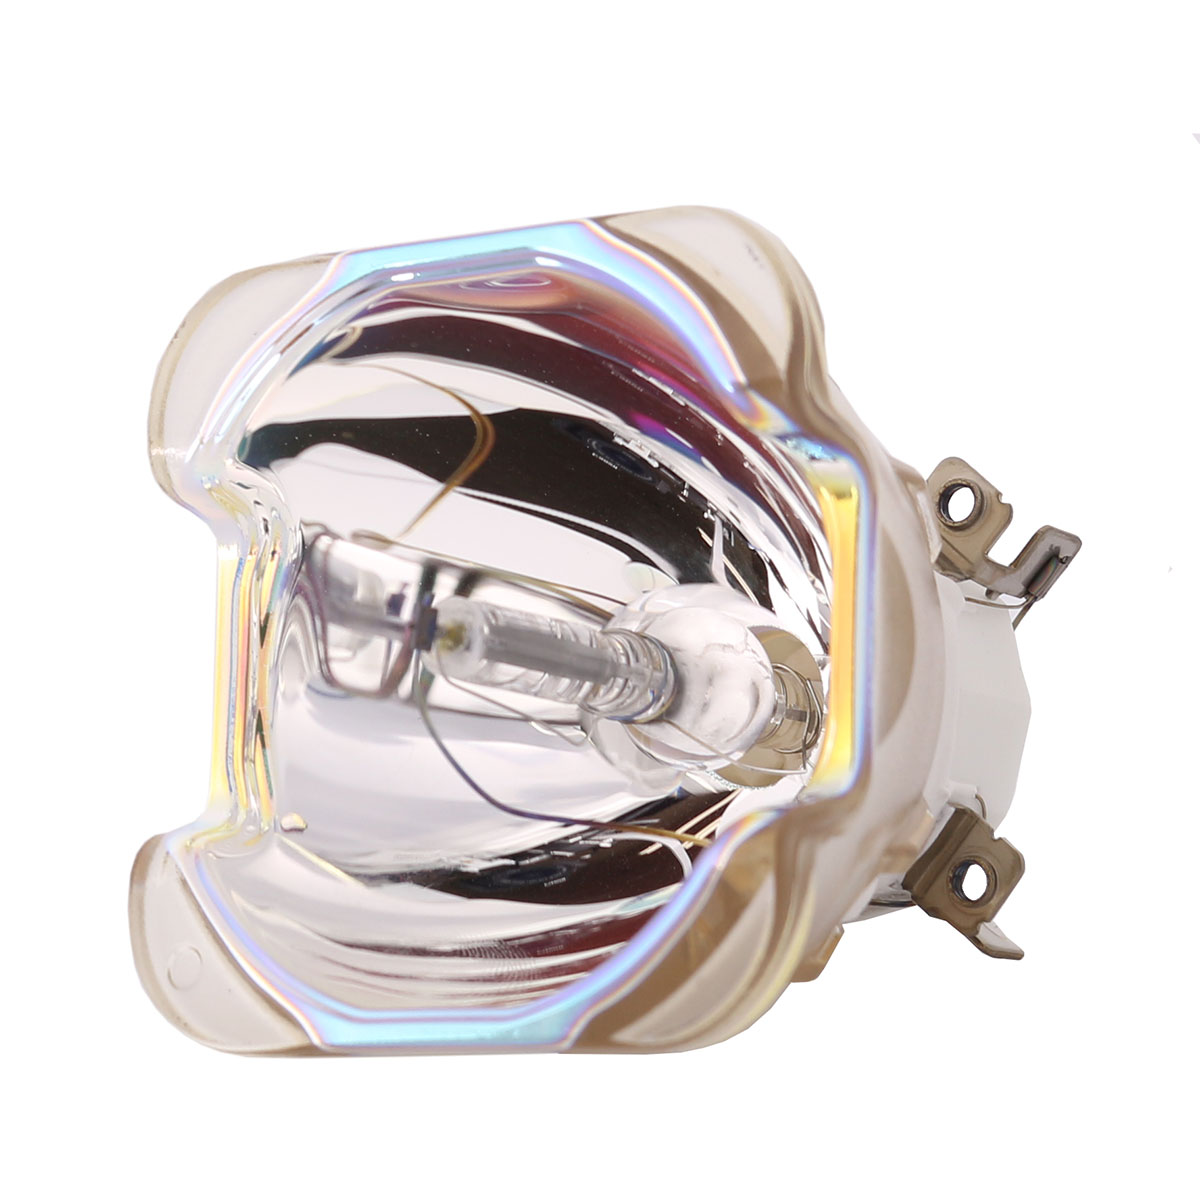 Lutema Economy for BenQ PU9730 Projector Lamp (Bulb Only) - image 5 of 5